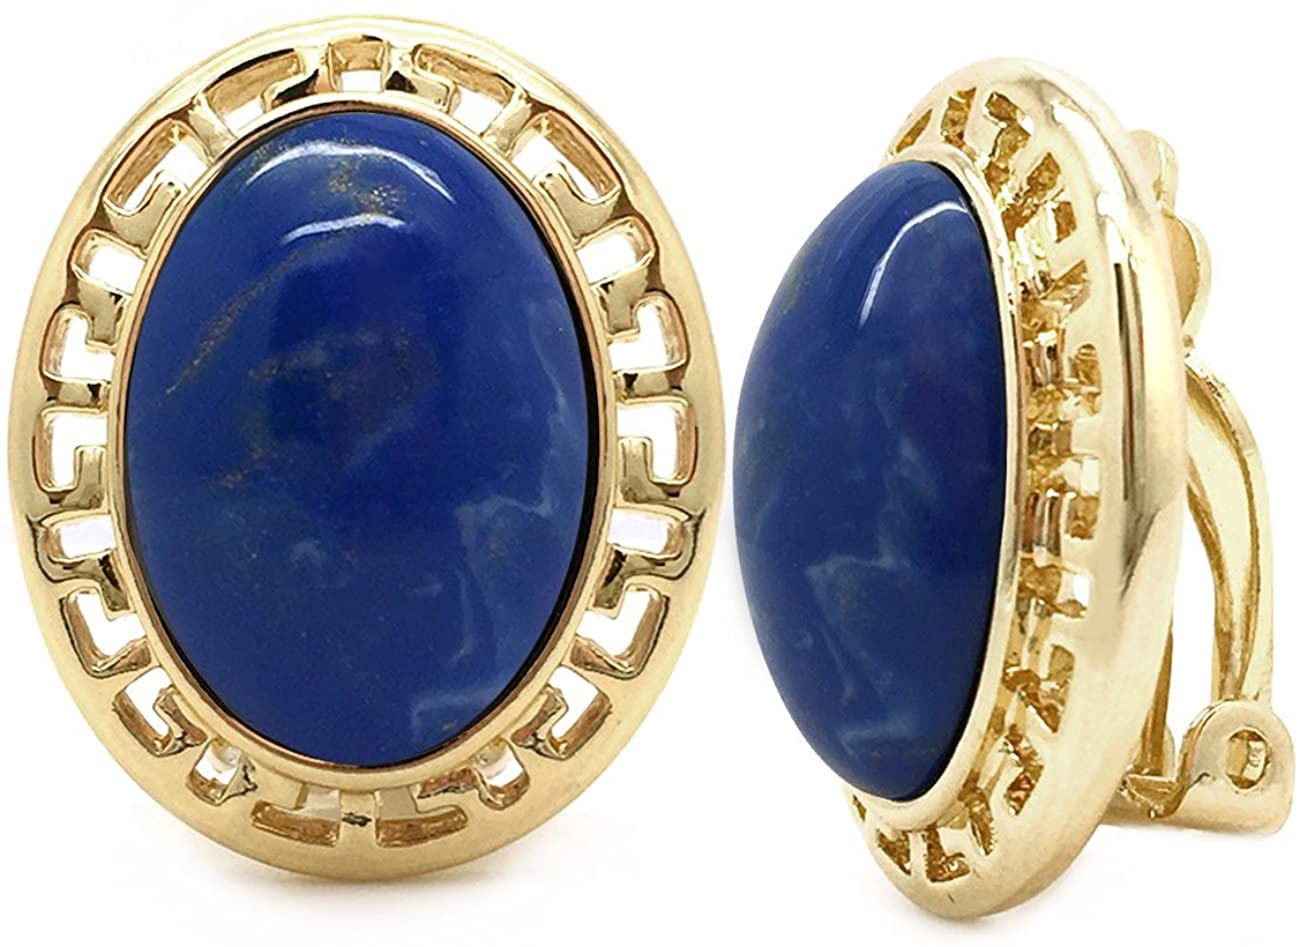 Sparkly Bride Clip On Earrings Oval Greek Key Resin Gold Plated Women Fashion